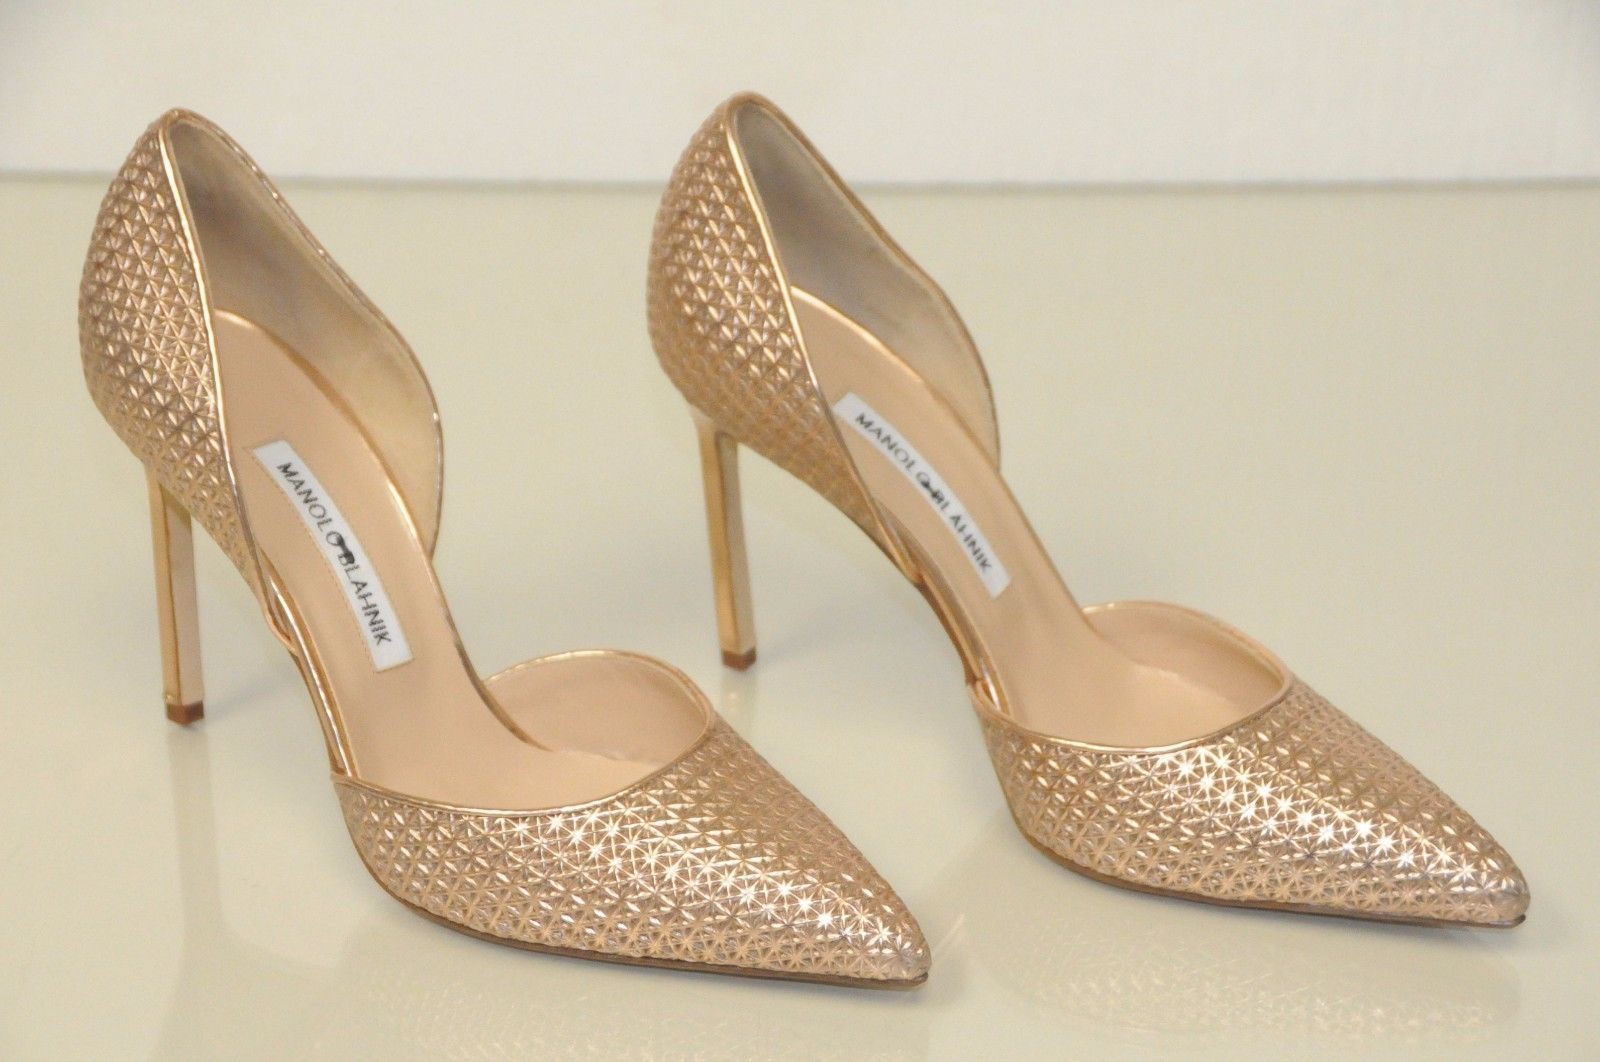 4b6dd127a6c New Manolo Blahnik Tayler Pink Rose Gold Metallic Pump Dorsay Shoes 39.5  40.5